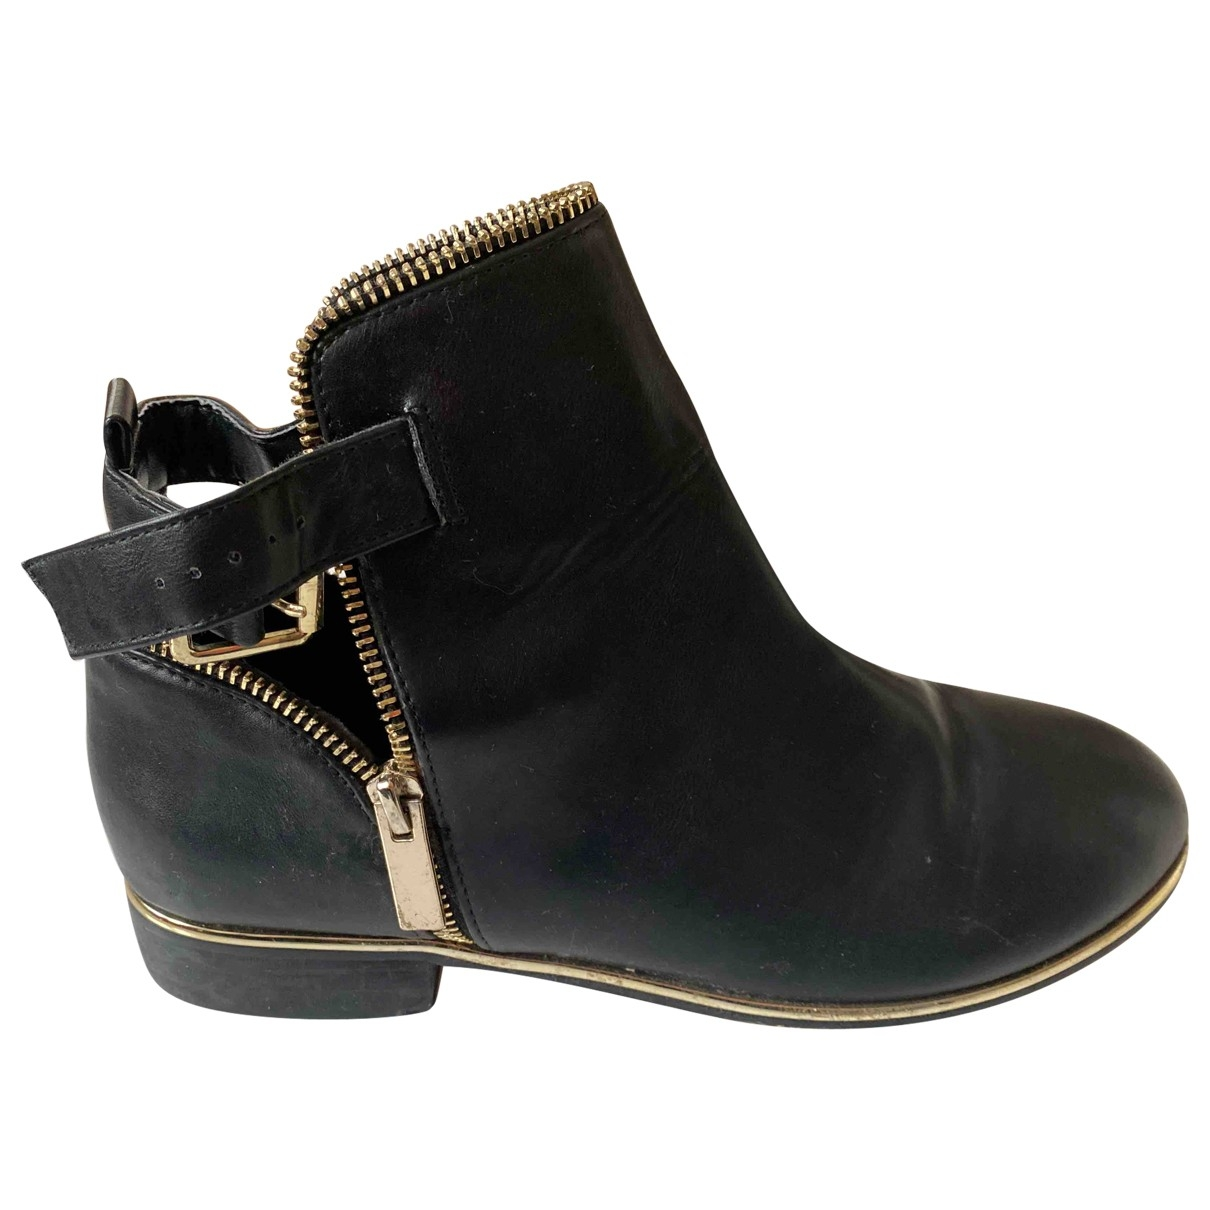 River Island \N Black Leather Ankle boots for Women 39 EU